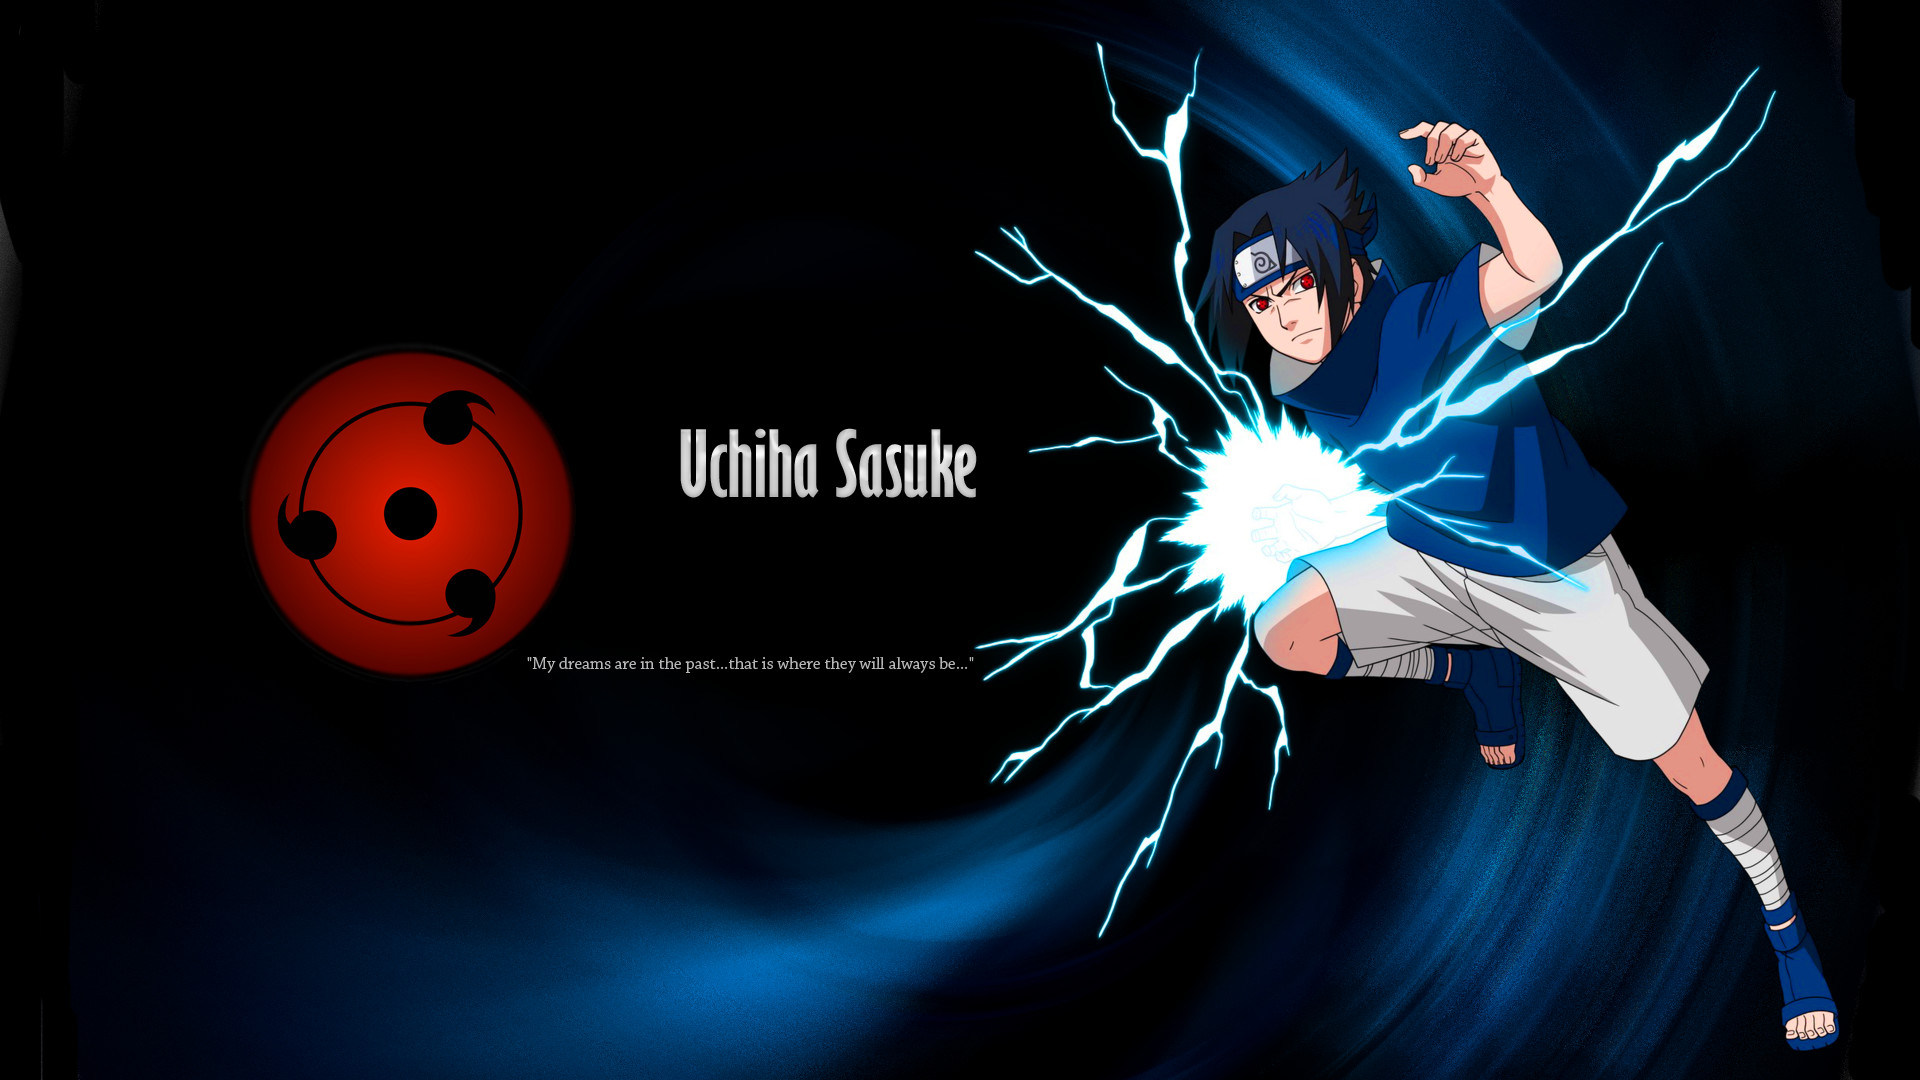 Naruto Wallpaper 22 | Airlines Wallpapers | Pinterest | Naruto wallpaper  and Naruto